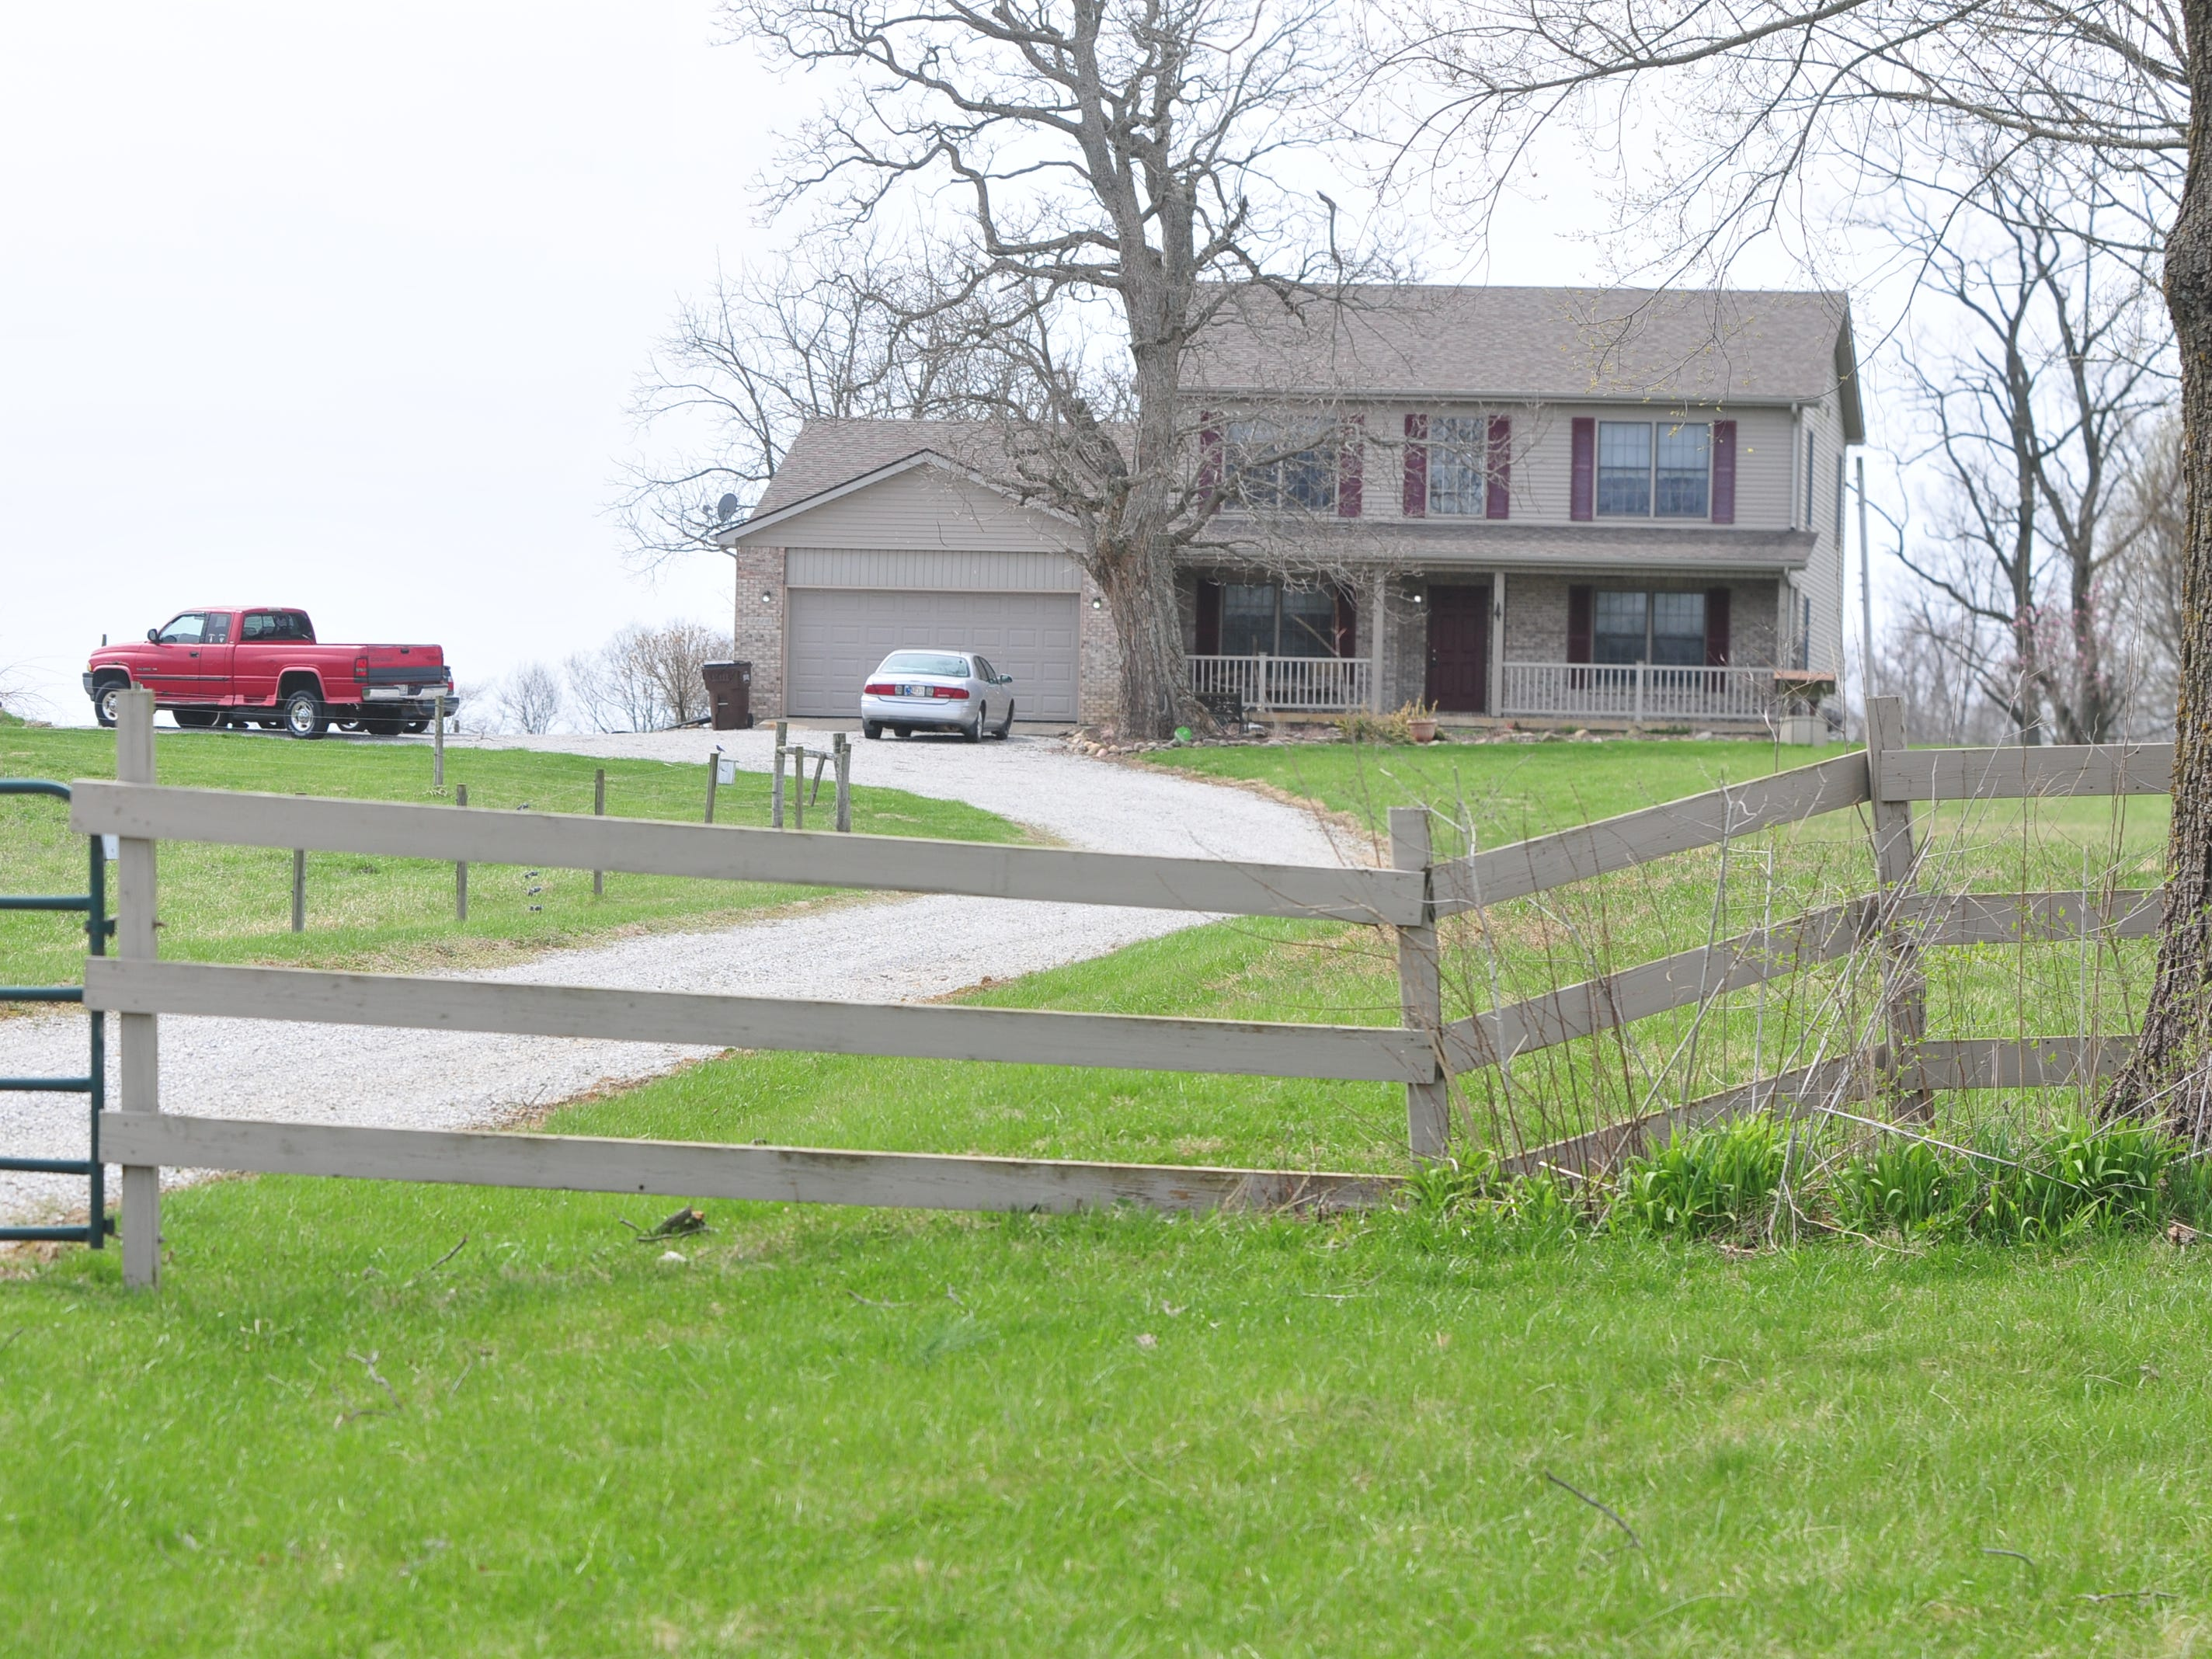 A request has been made for a zoning variance for the home and 10 acres at 4446 Stevens Road.